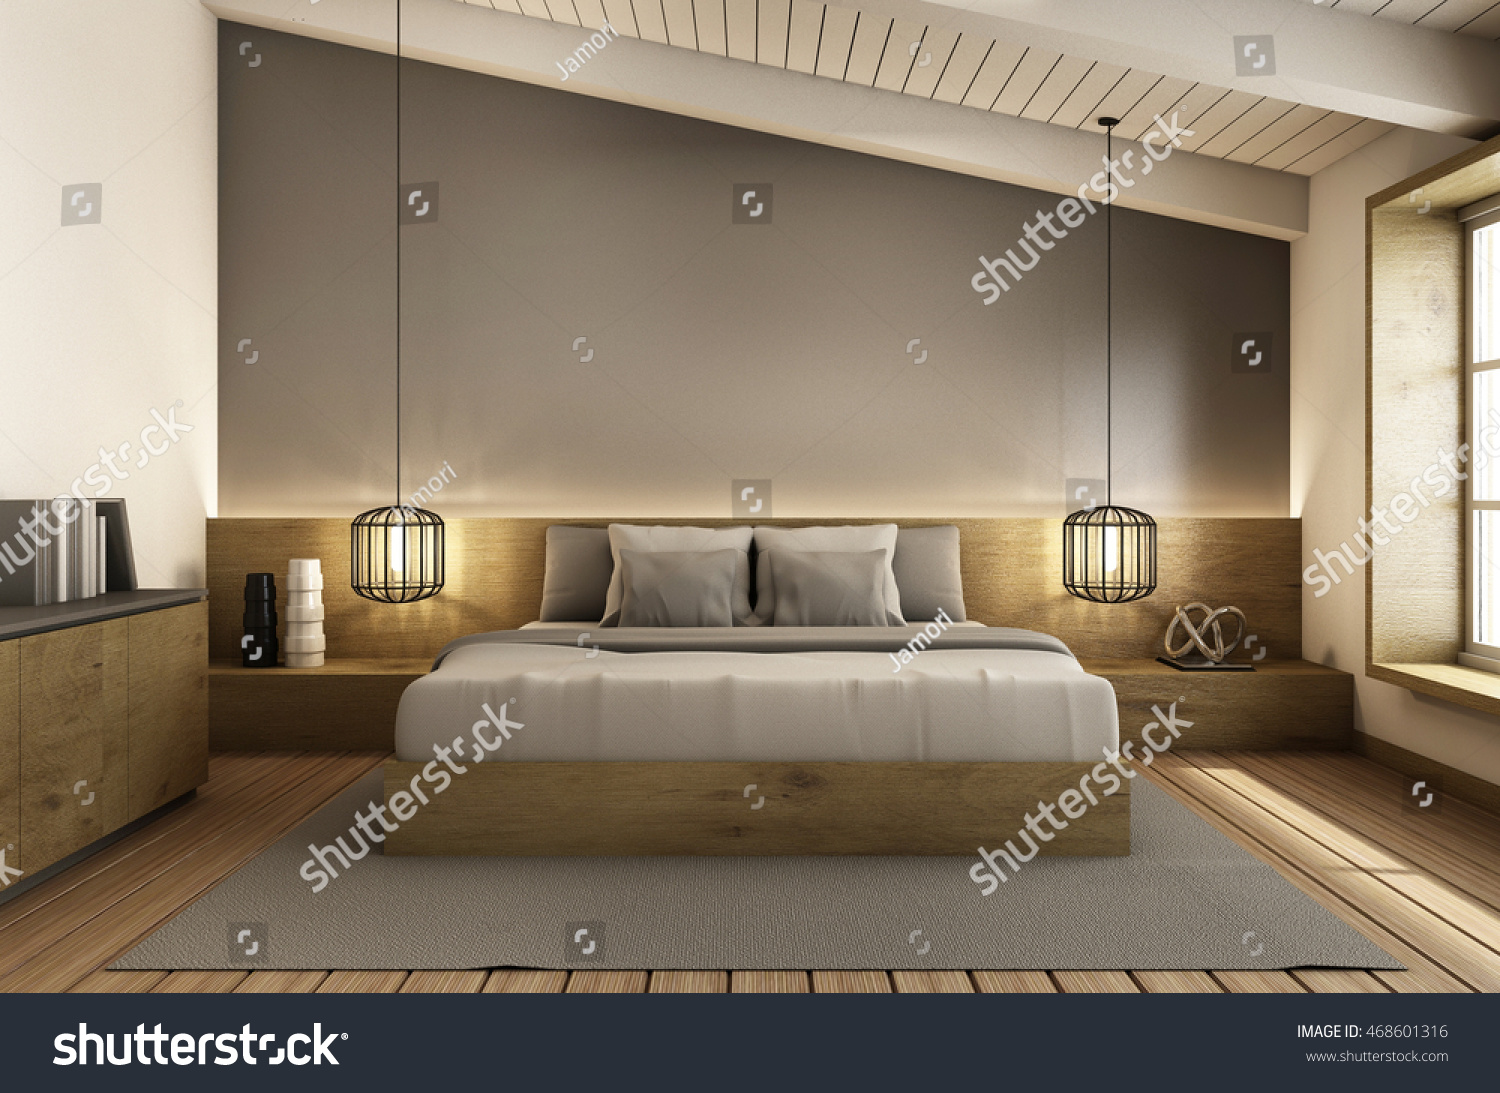 Bedroom Under Roof Interior Design Modern Stock Illustration 468601316